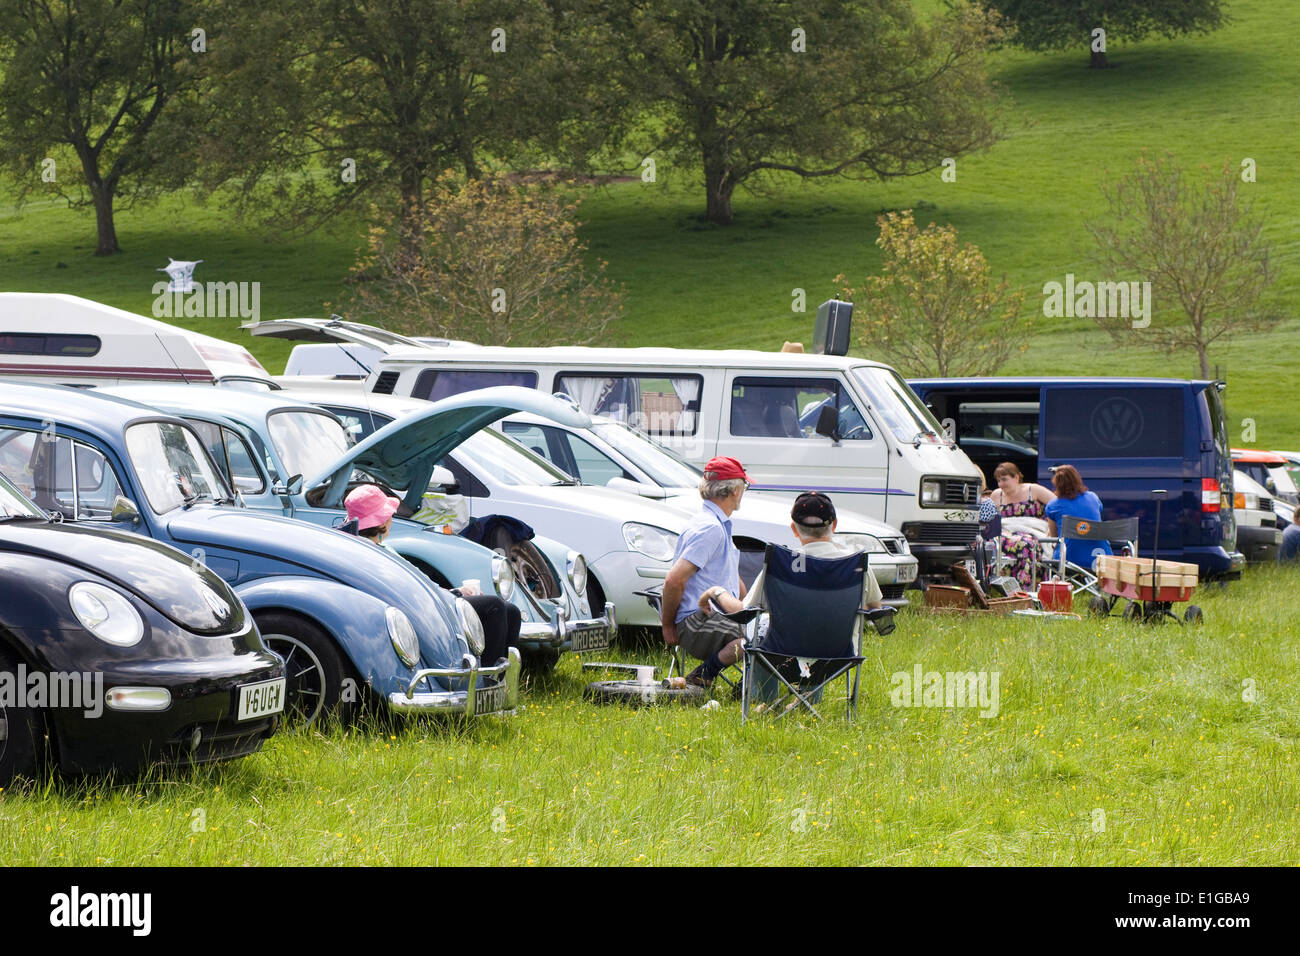 People Picnicking at a Volkswagen Show in England - Stock Image